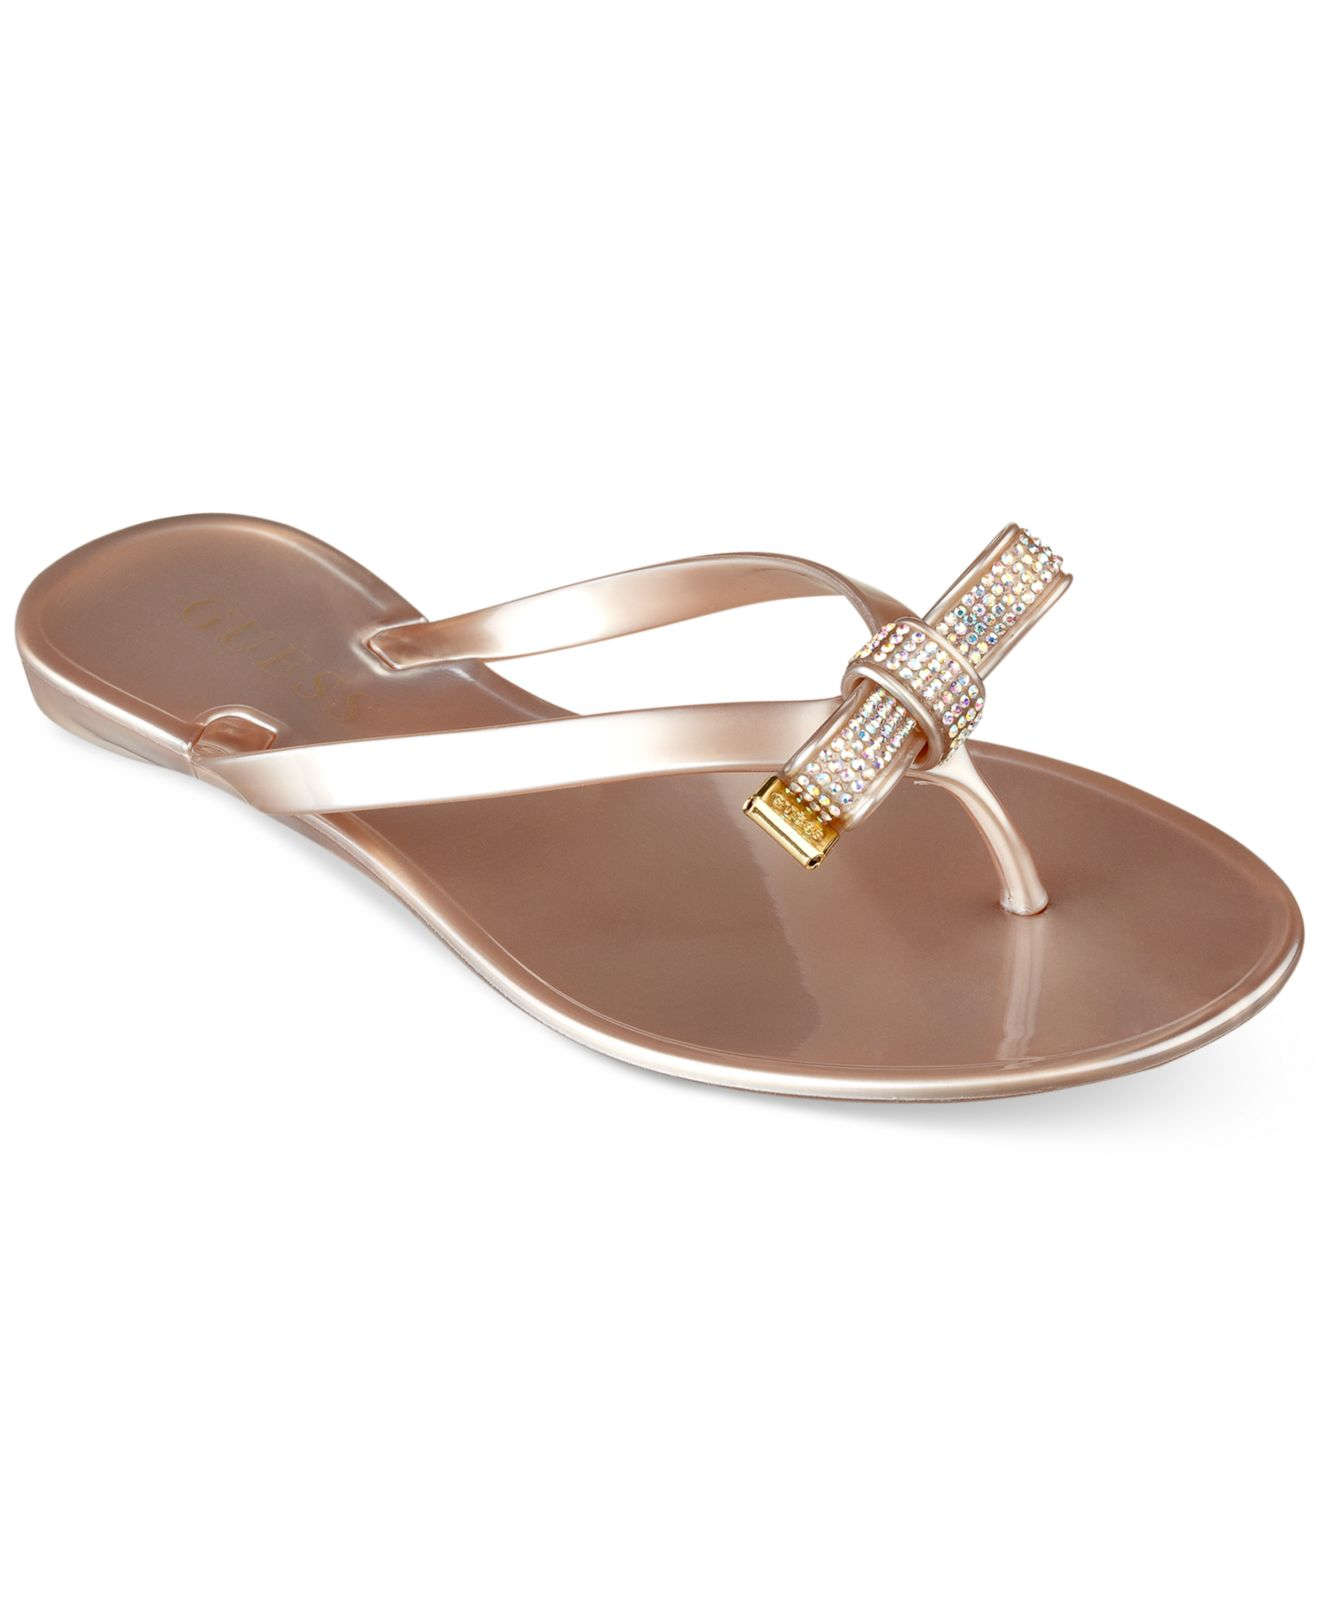 Lyst - Guess Jelsie Bow Jelly Flip Flops In Pink-5872